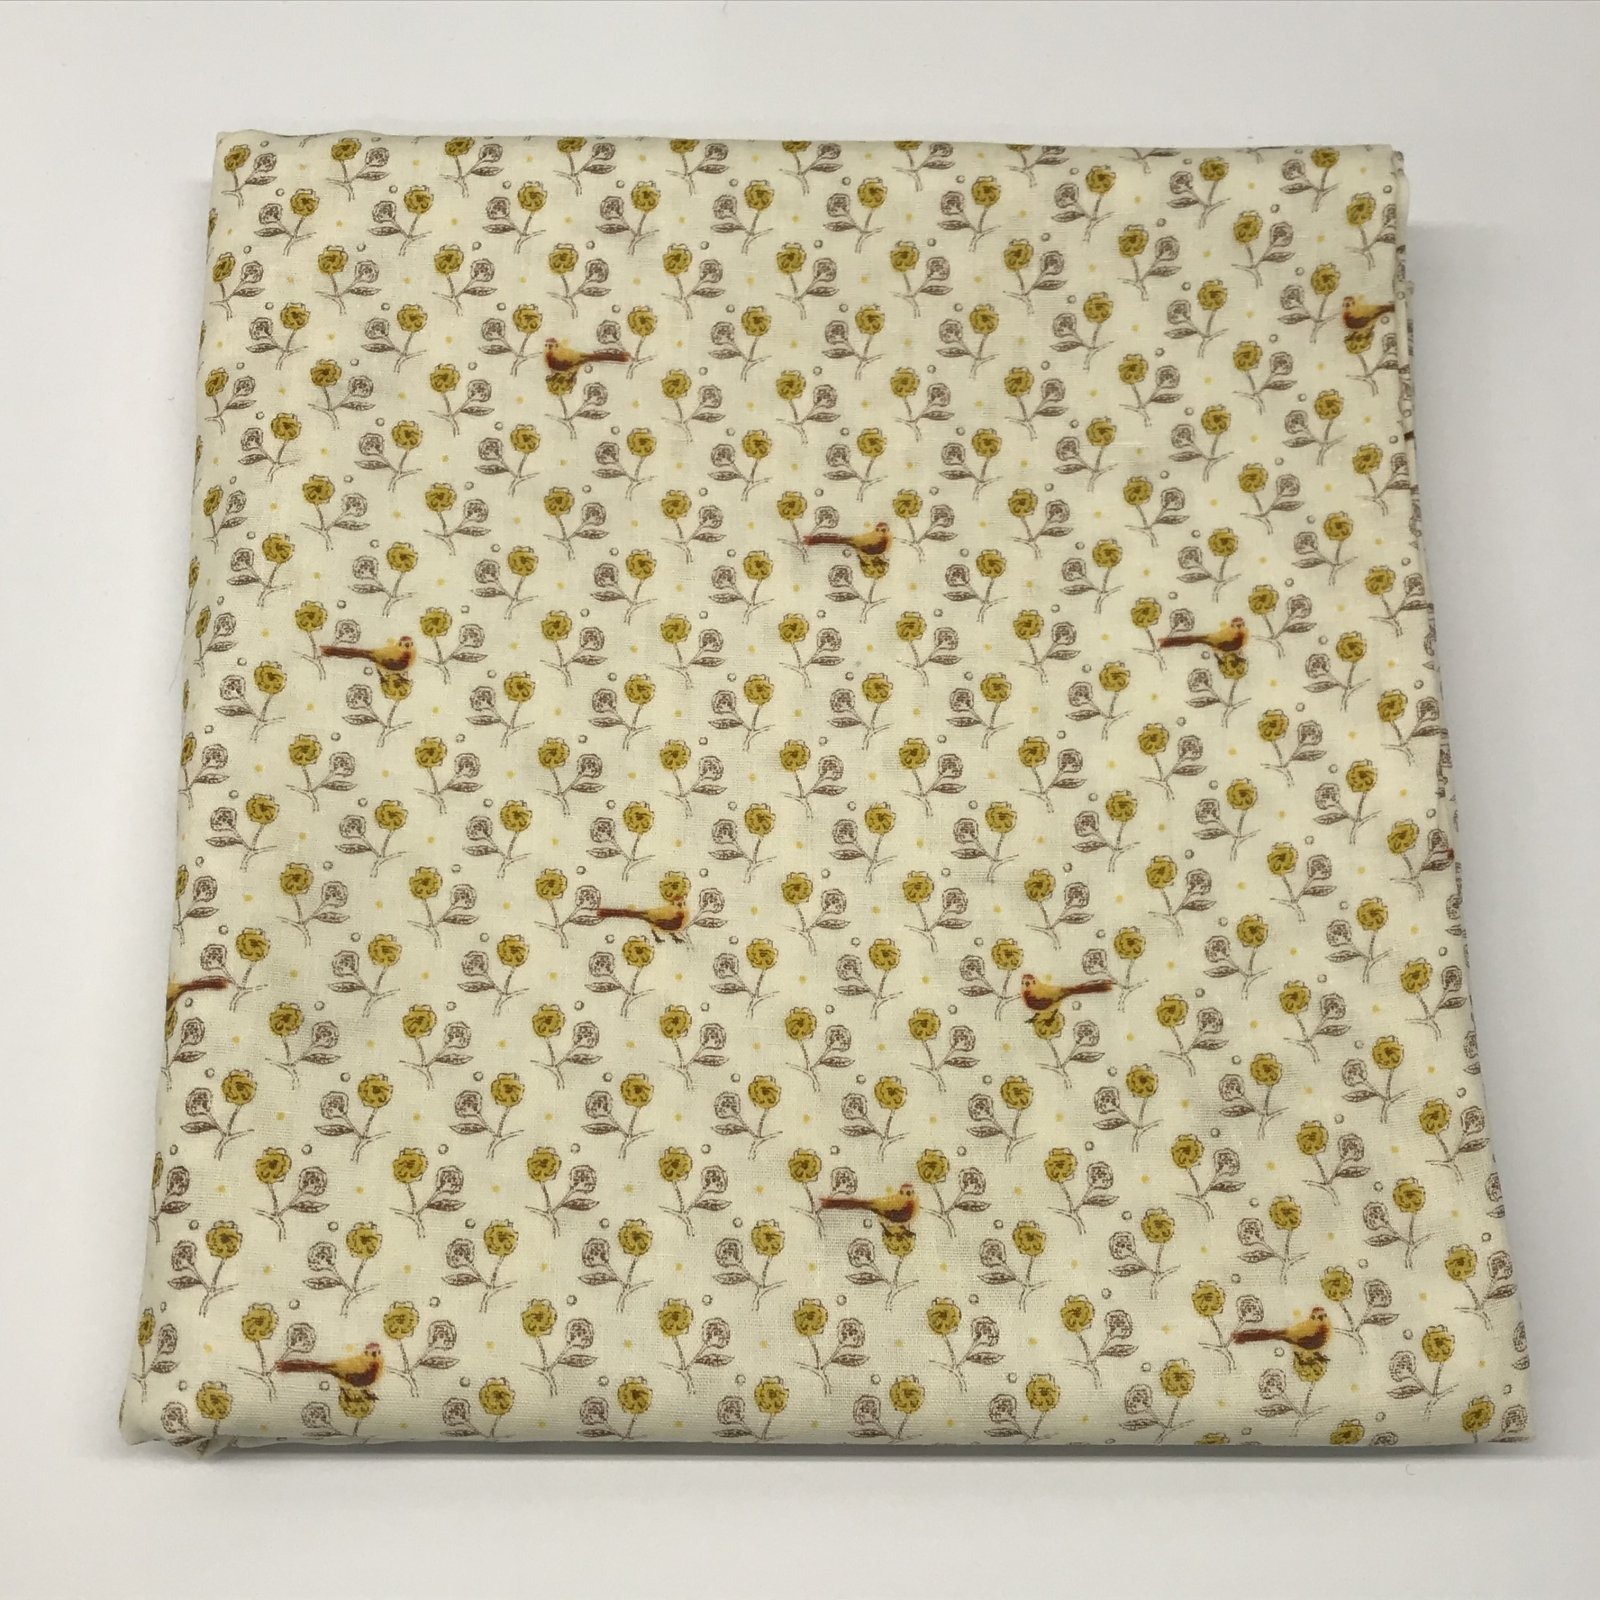 Kokka - Obiko Double Gauze - Yellow with Birds - 2 1/2 yards